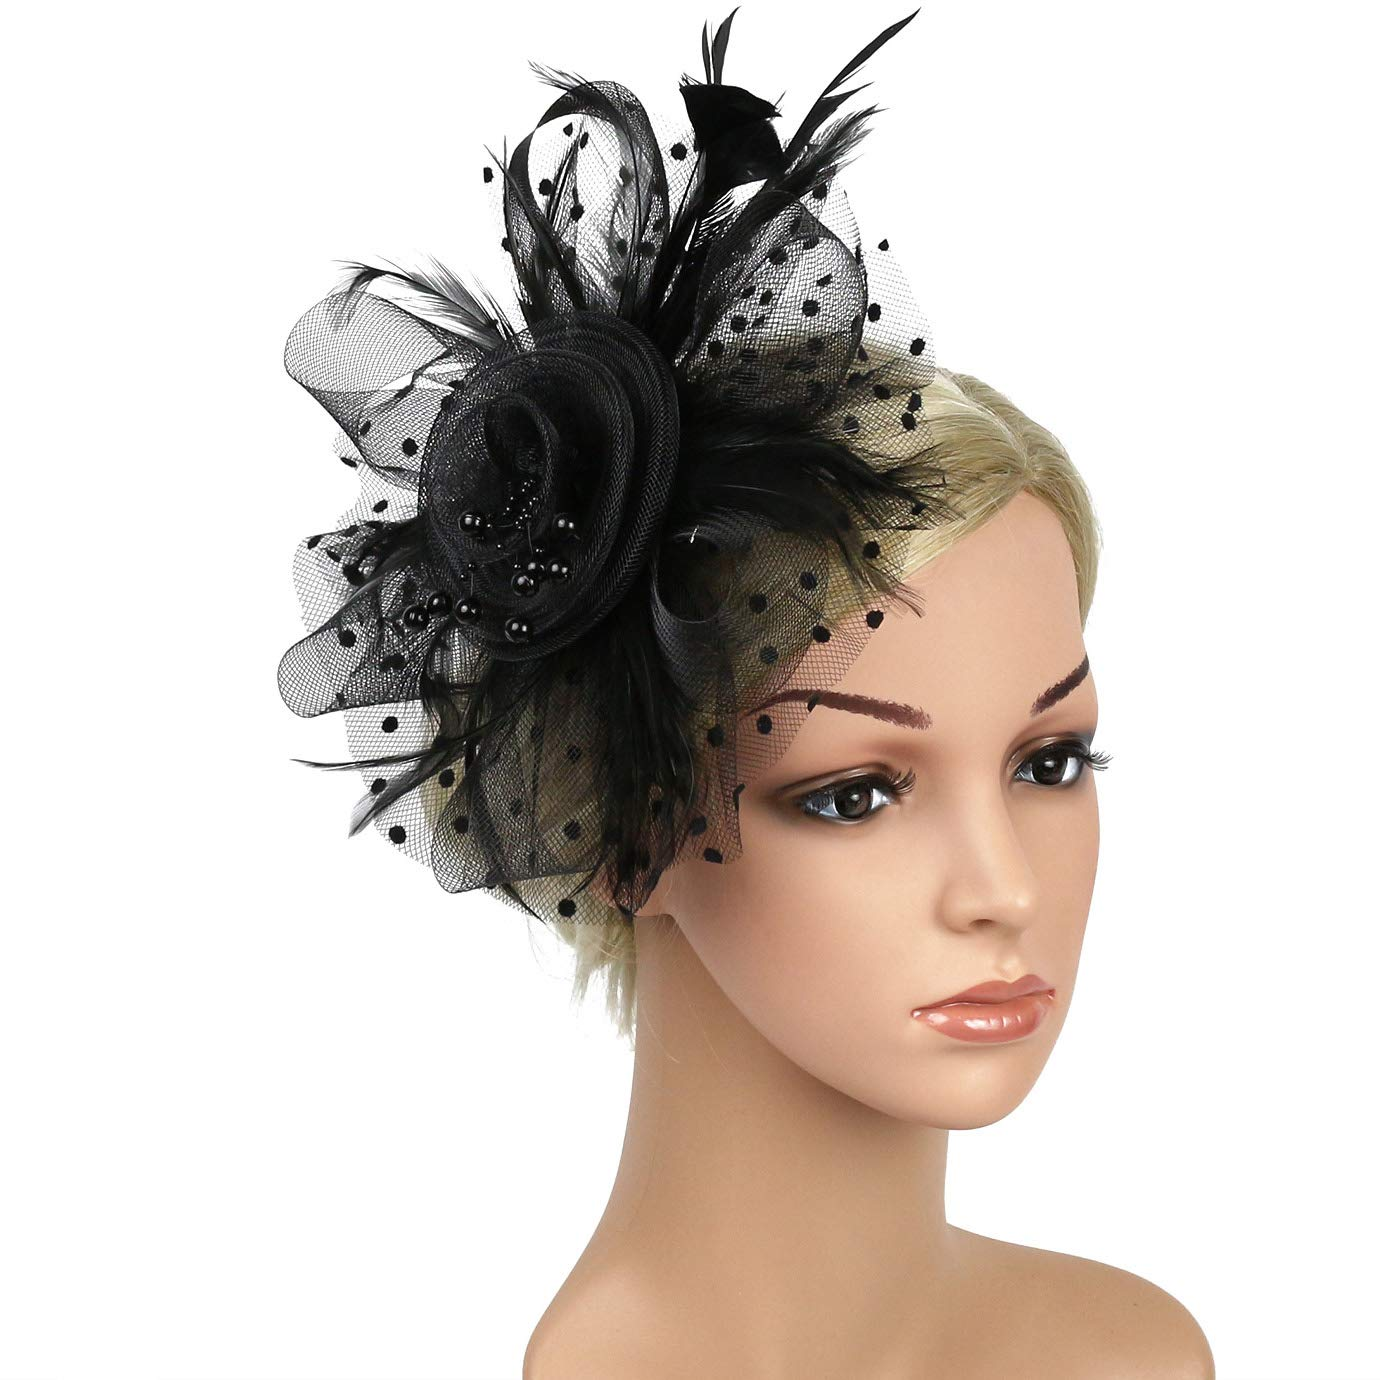 Xflyee Fascinators Hat Flower Mesh Ribbons Feathers Tea Party Cocktail Headband for Girls and Women (Black / 7 Inch Diameter)